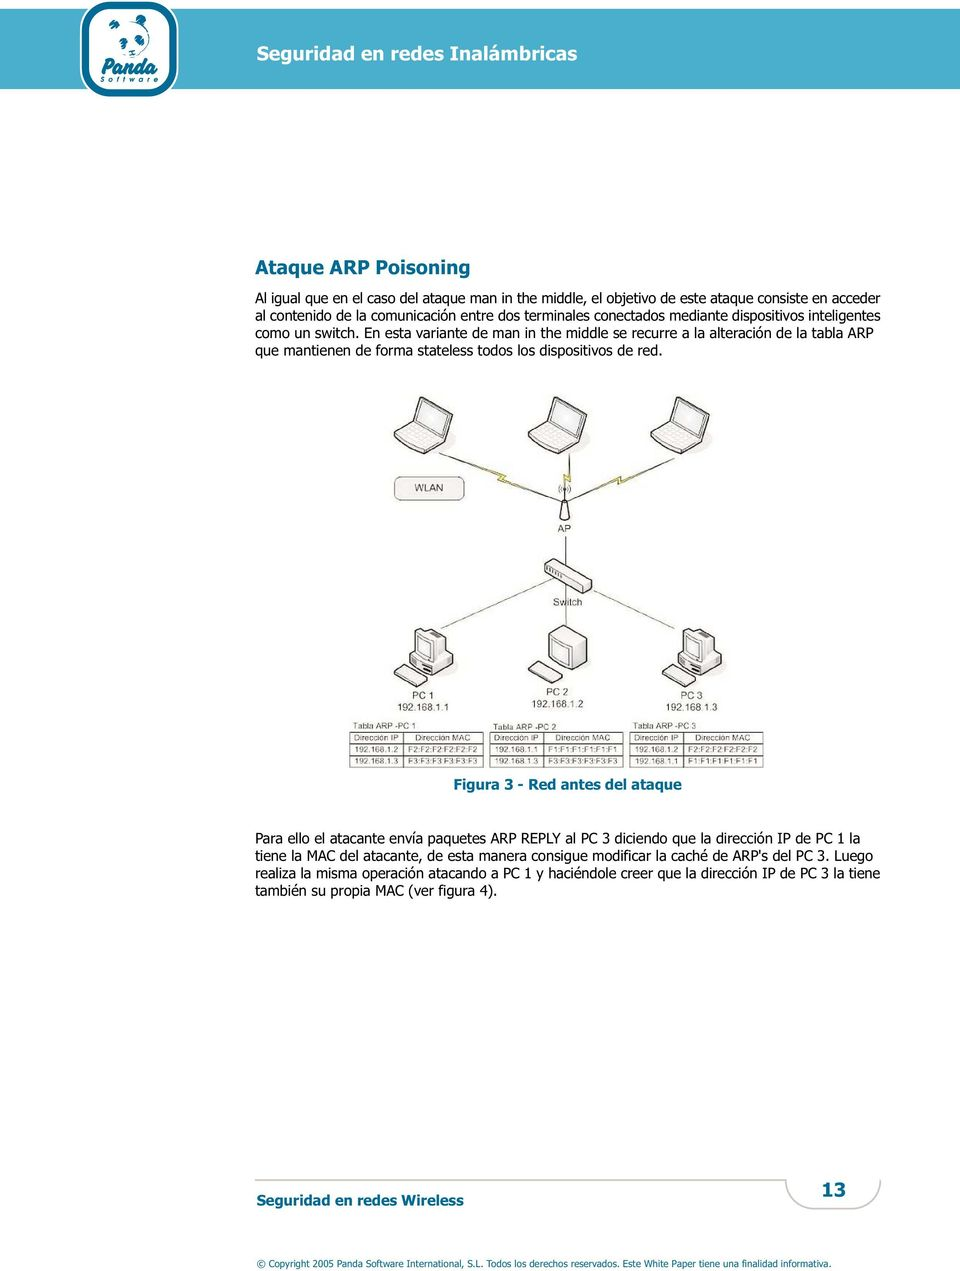 En esta variante de man in the middle se recurre a la alteración de la tabla ARP que mantienen de forma stateless todos los dispositivos de red.